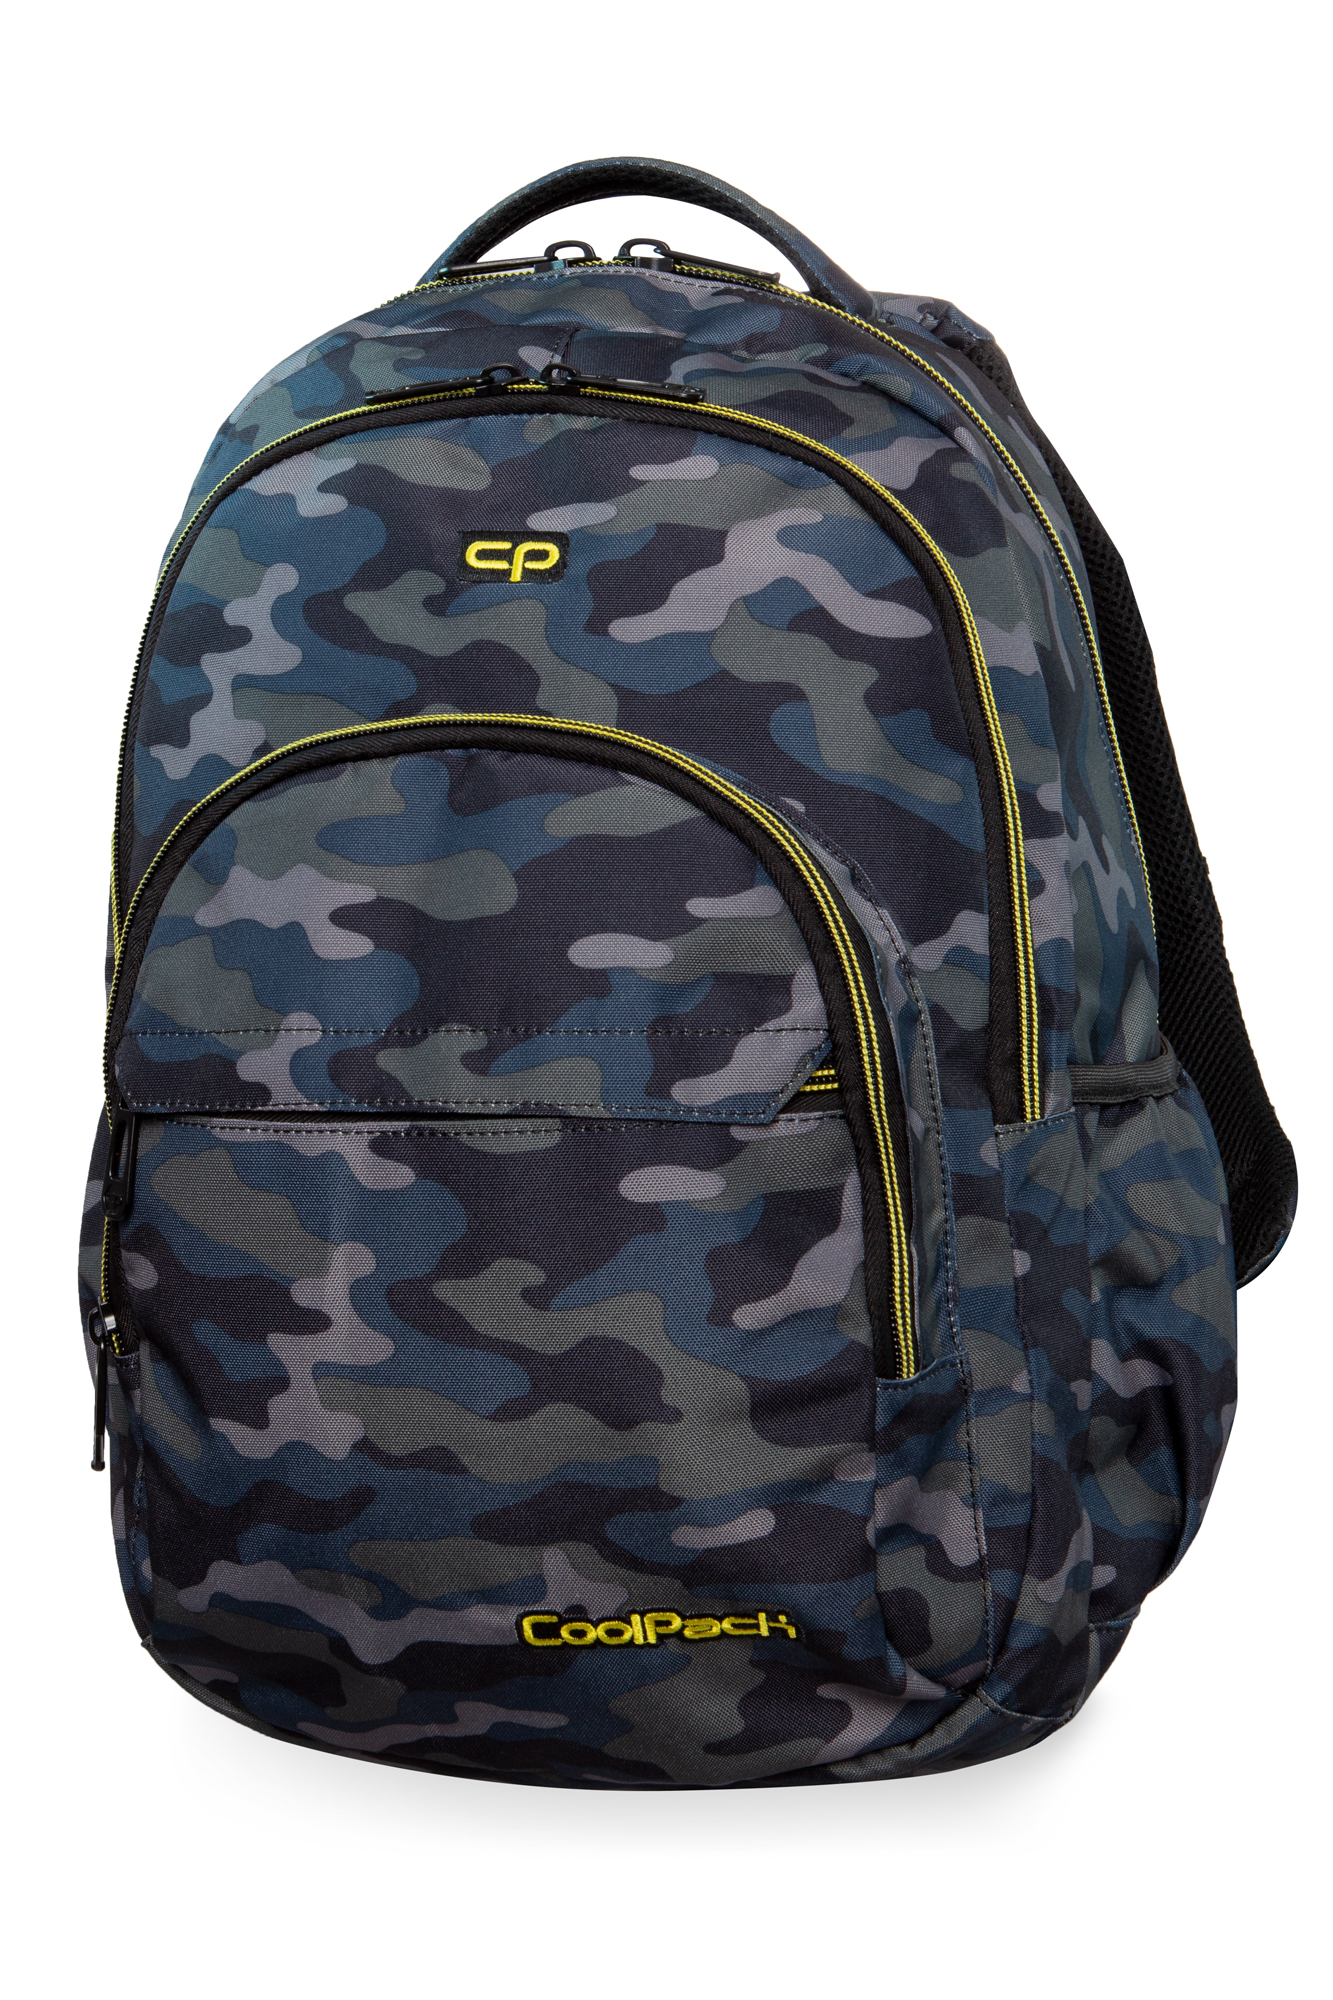 Coolpack - basic plus - youth backpack - military